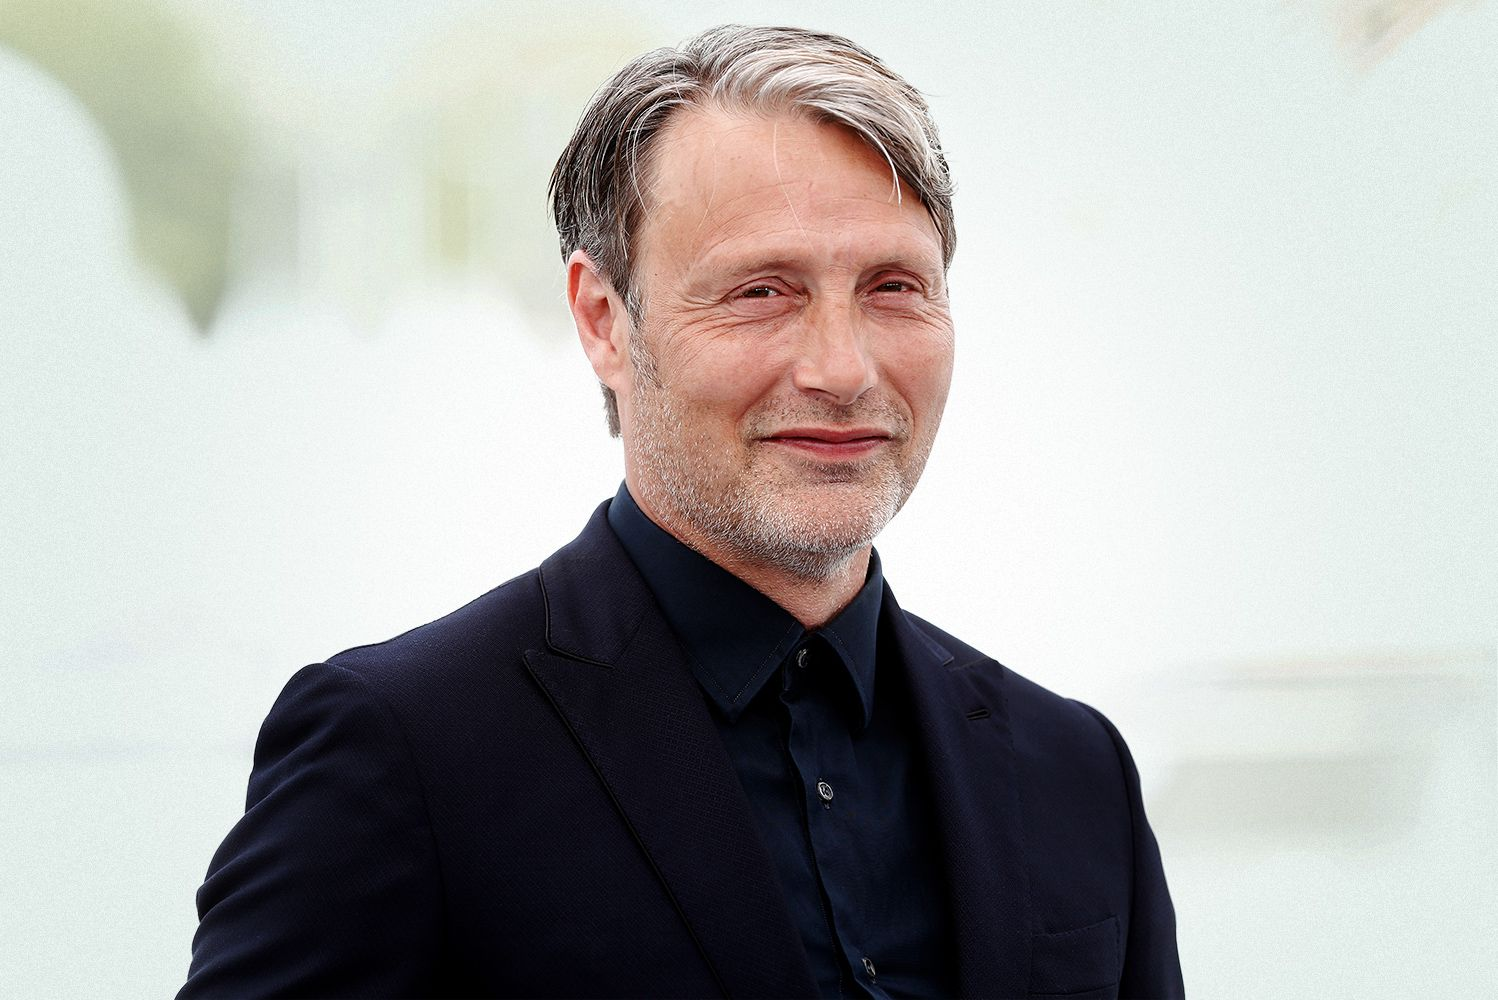 Mads Mikkelsen Is Aware Everyone Loves Him. He's Just Too Busy to Pay Attention To it.